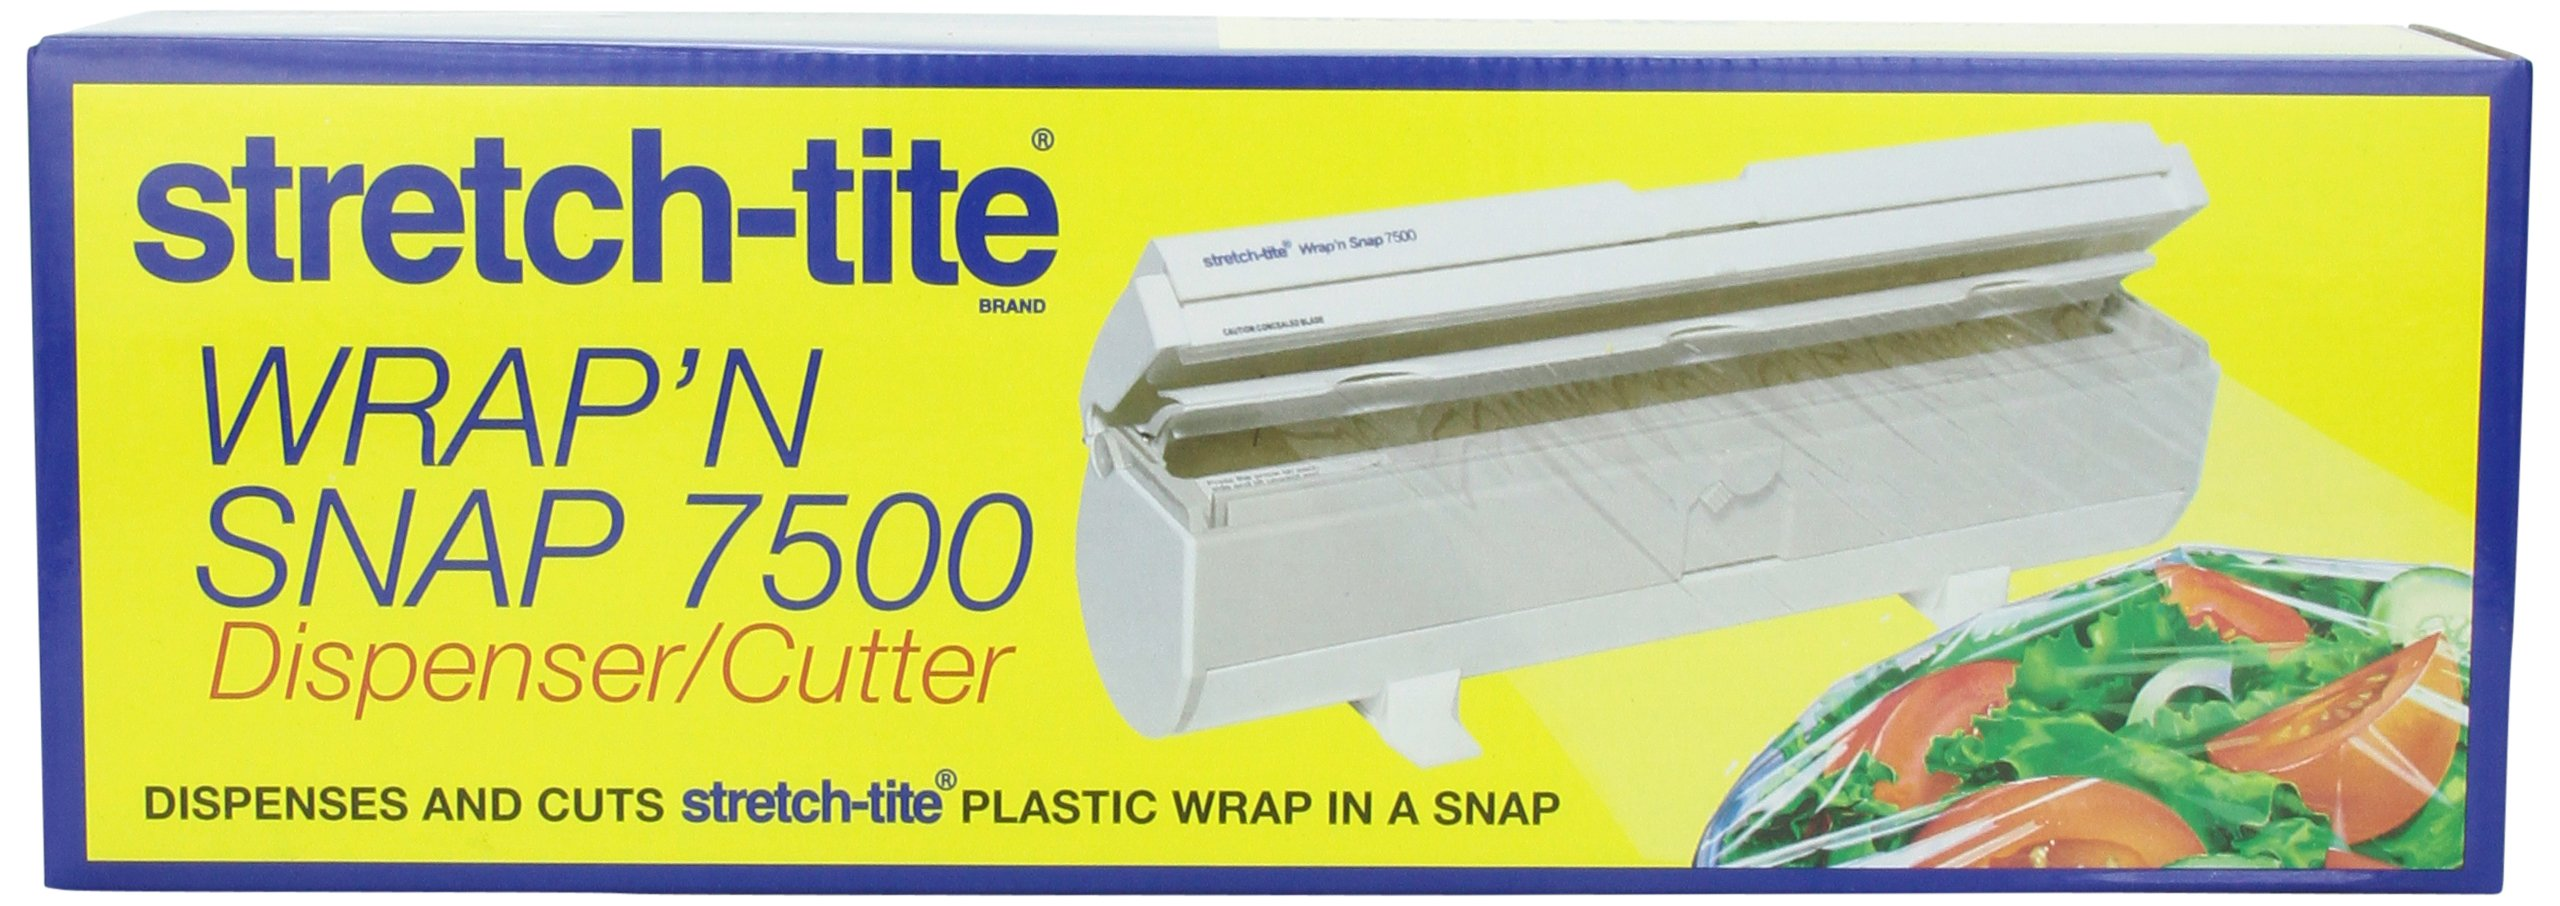 Stretch-tite Wrap'N Snap 7500 Dispenser